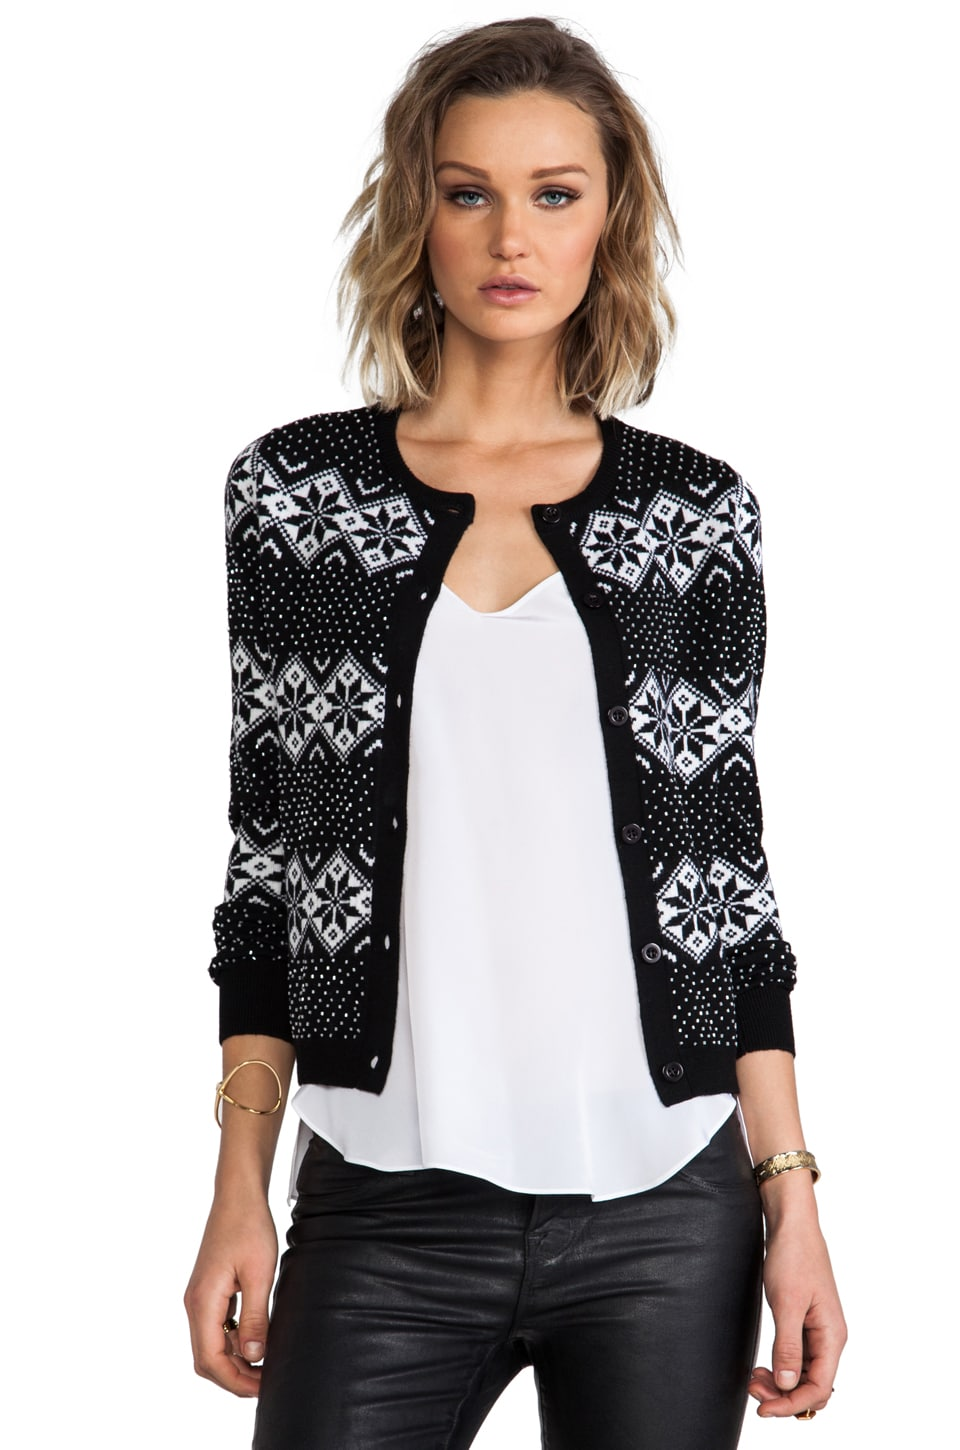 Alice + Olivia Snow Jacquard and Beads Cardigan in Black/White